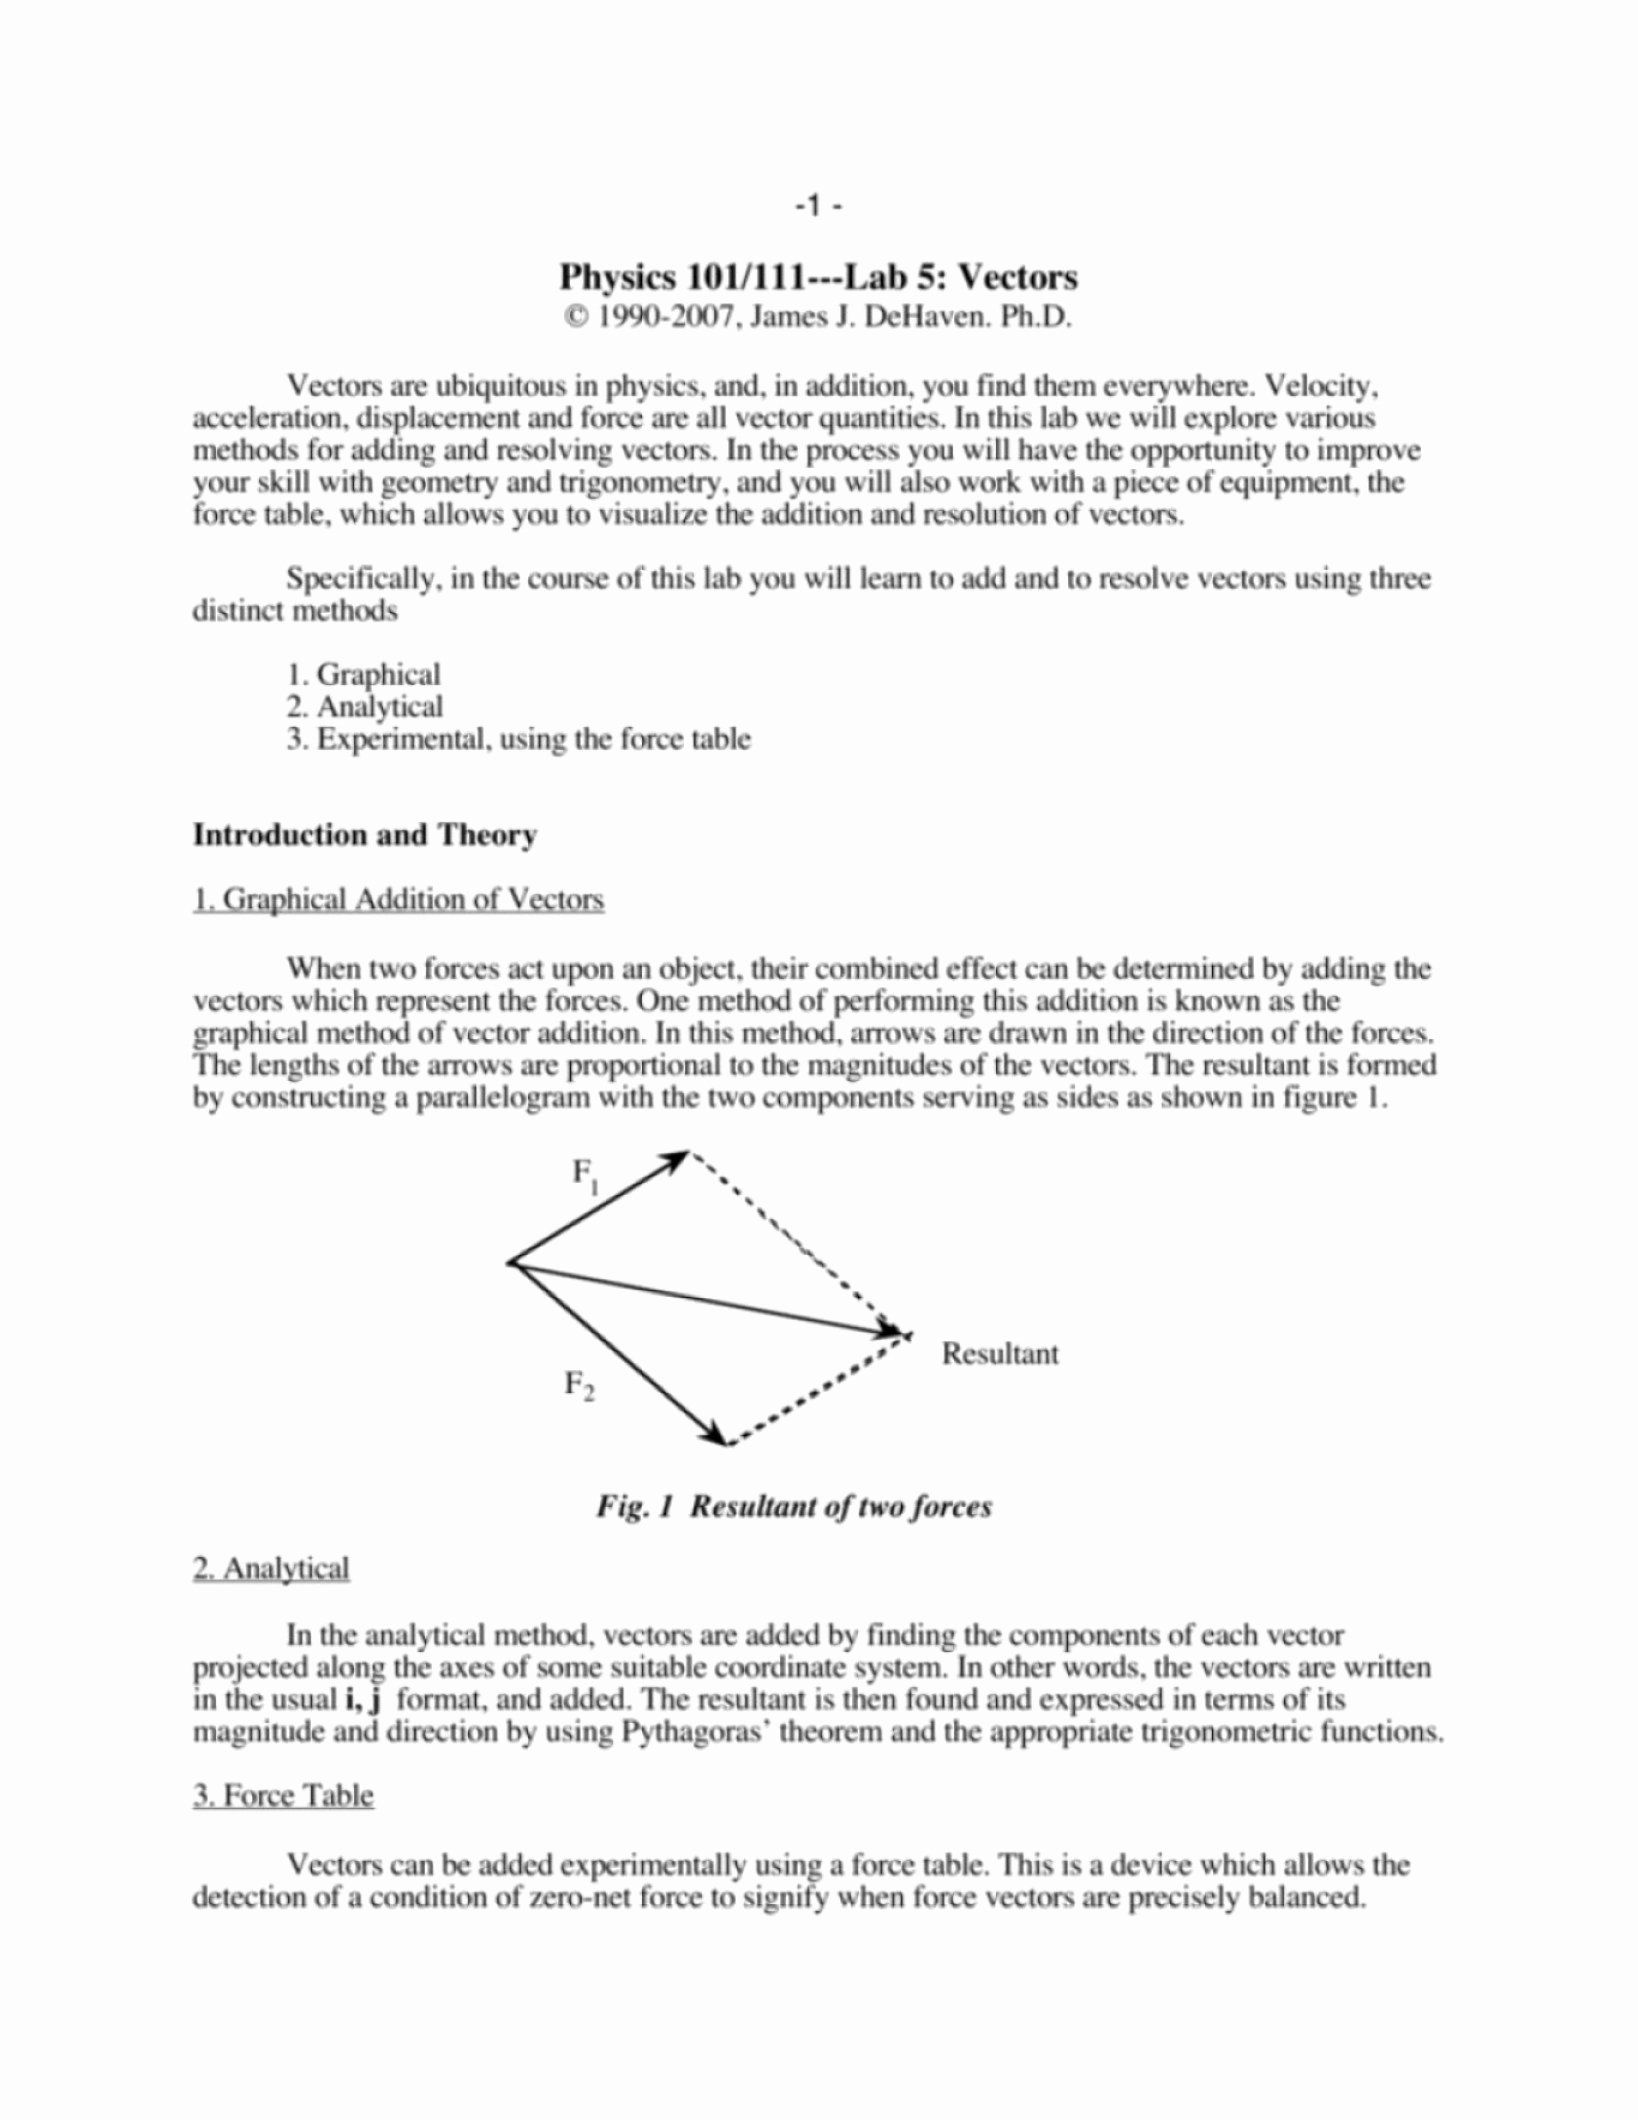 Vector Addition Worksheet With Answers Luxury Resultant Vector Worksheet In 2020 Physics Answers Addition Worksheets Motion Graphs Worksheets